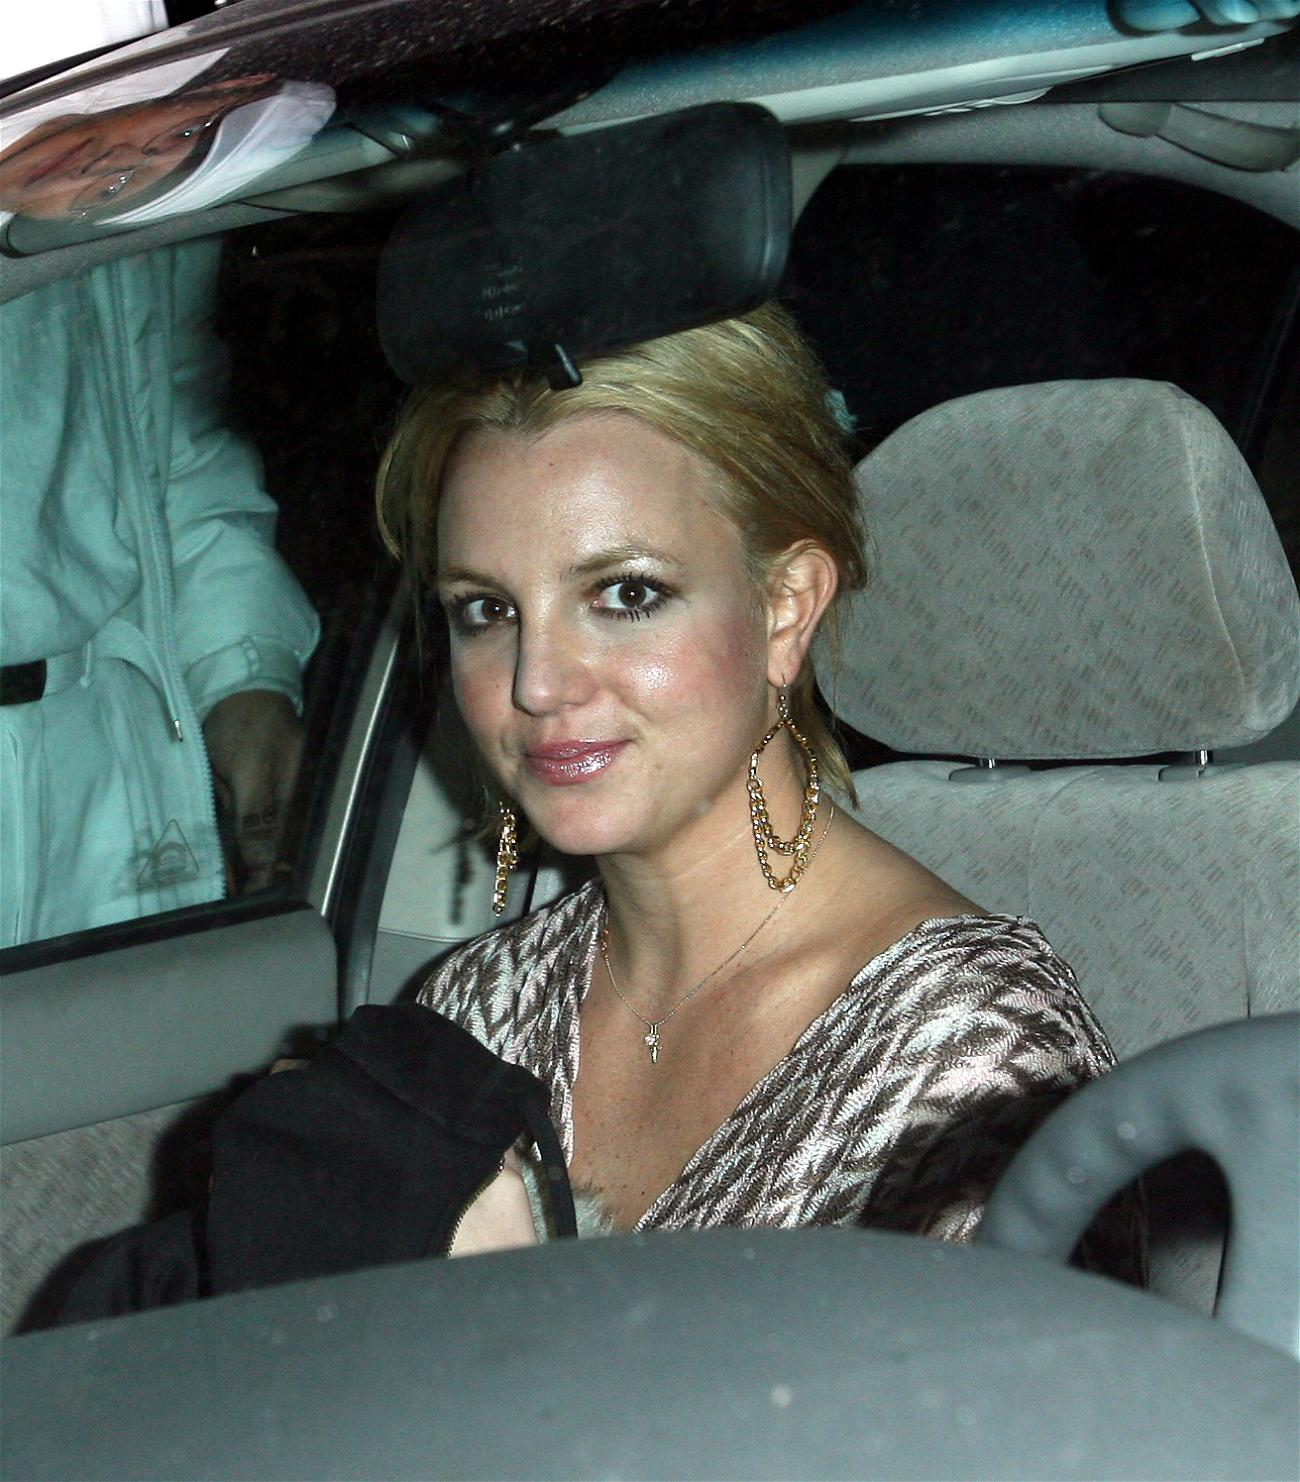 Britney Spears' Housekeep Slapping Case Forwarded To District Attorney's Office